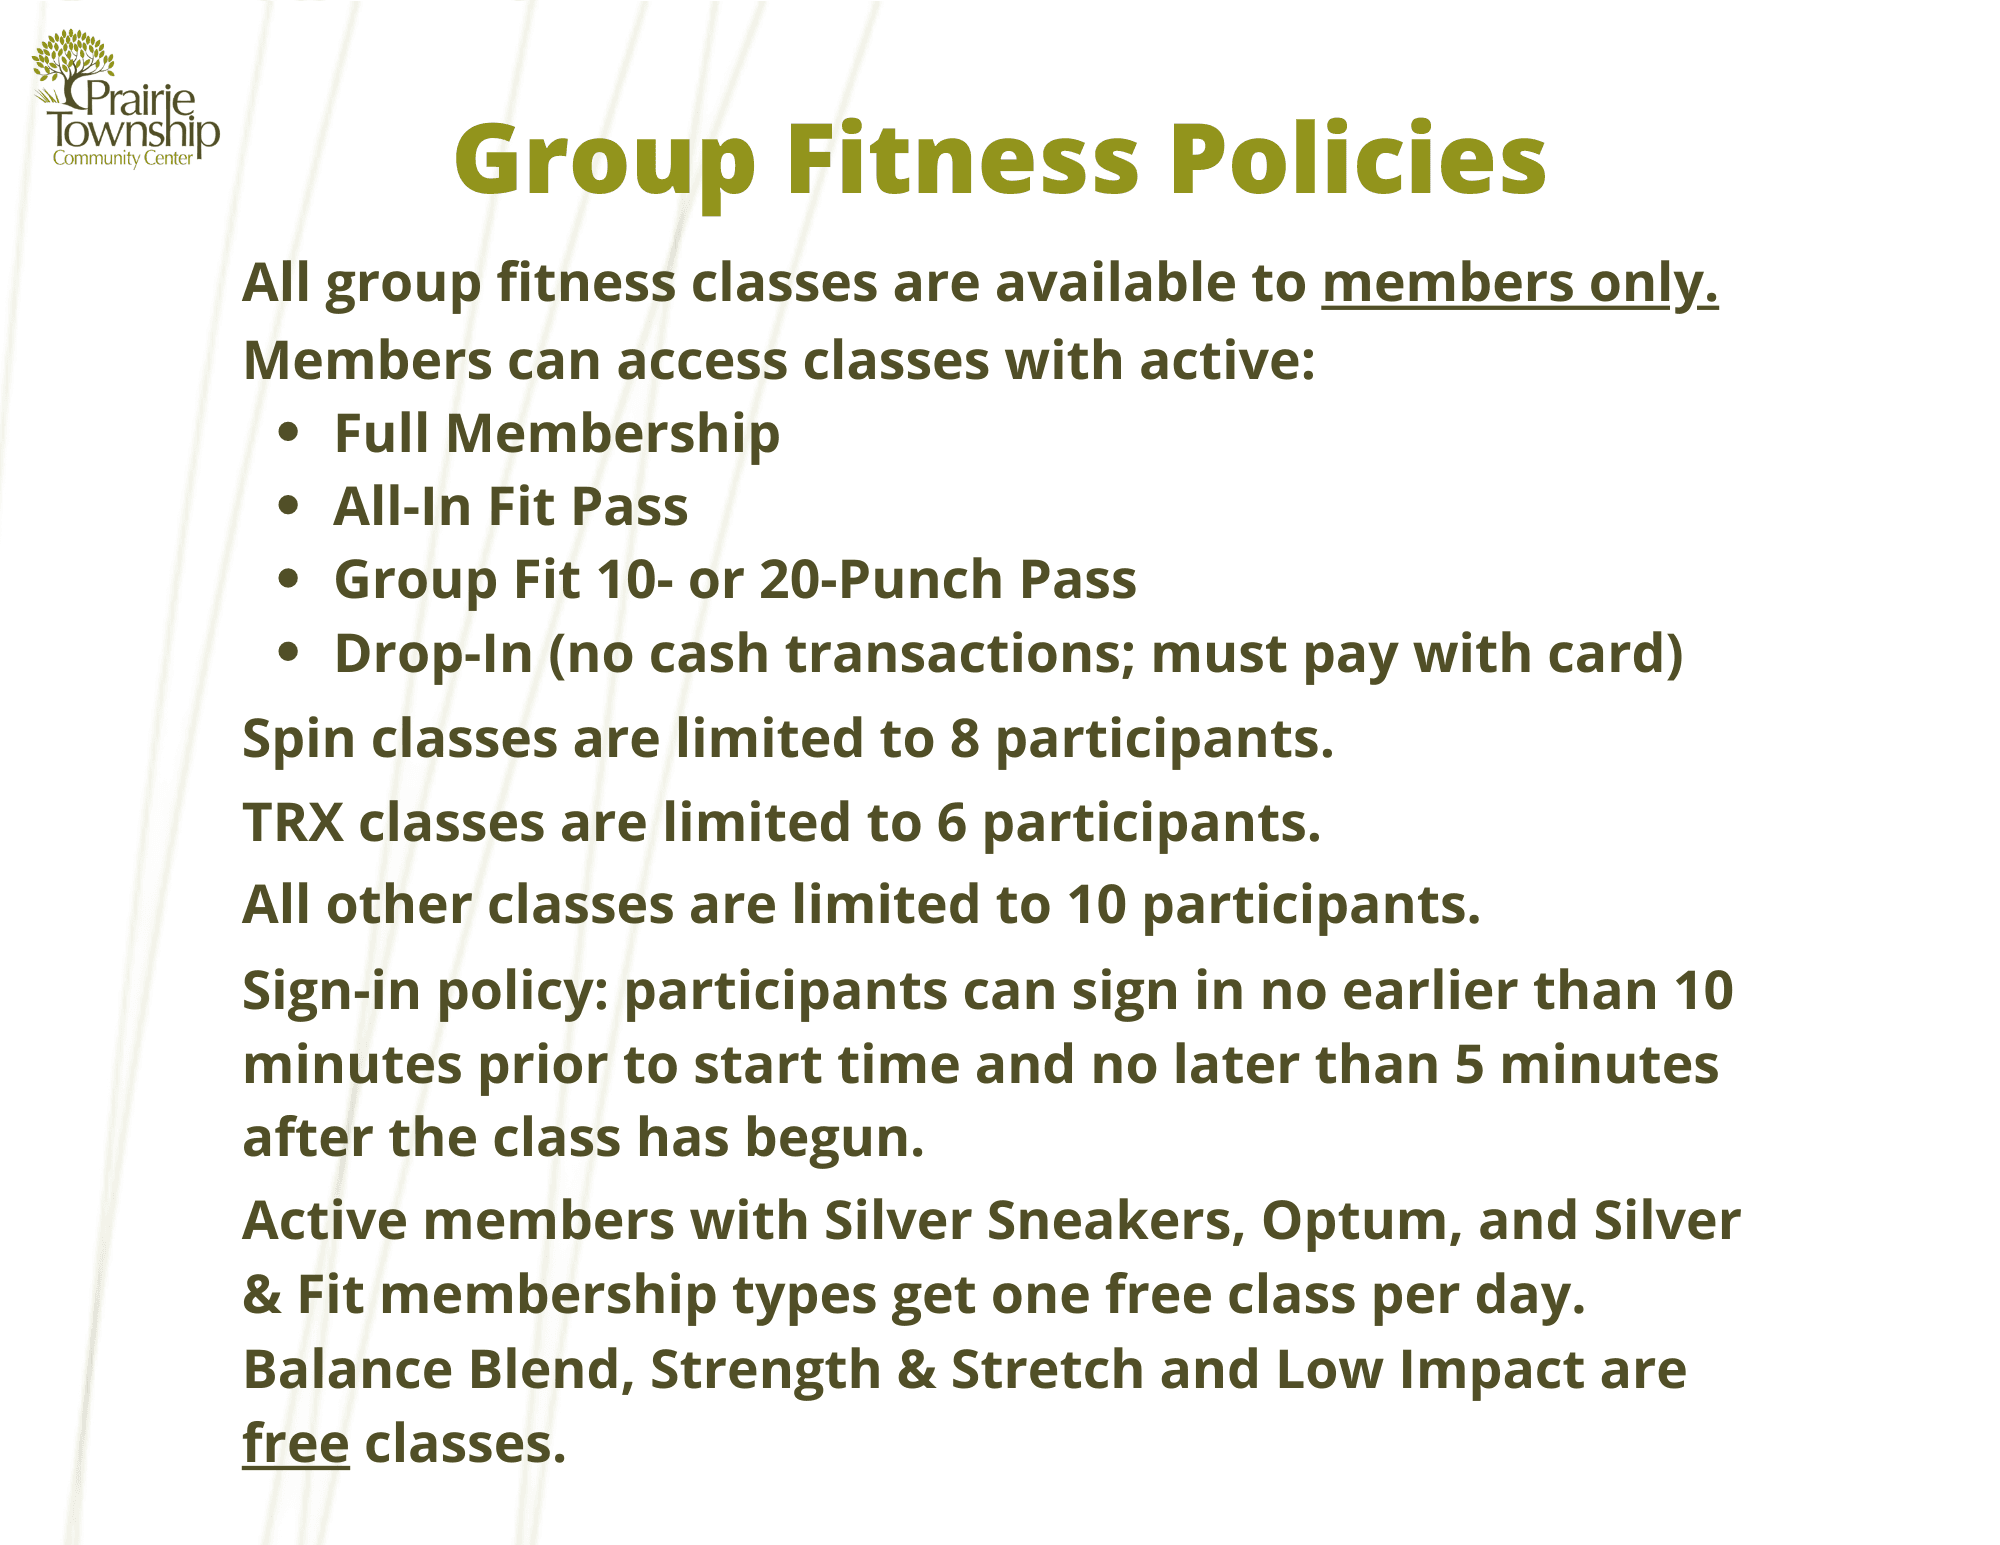 Group Fitness Policies